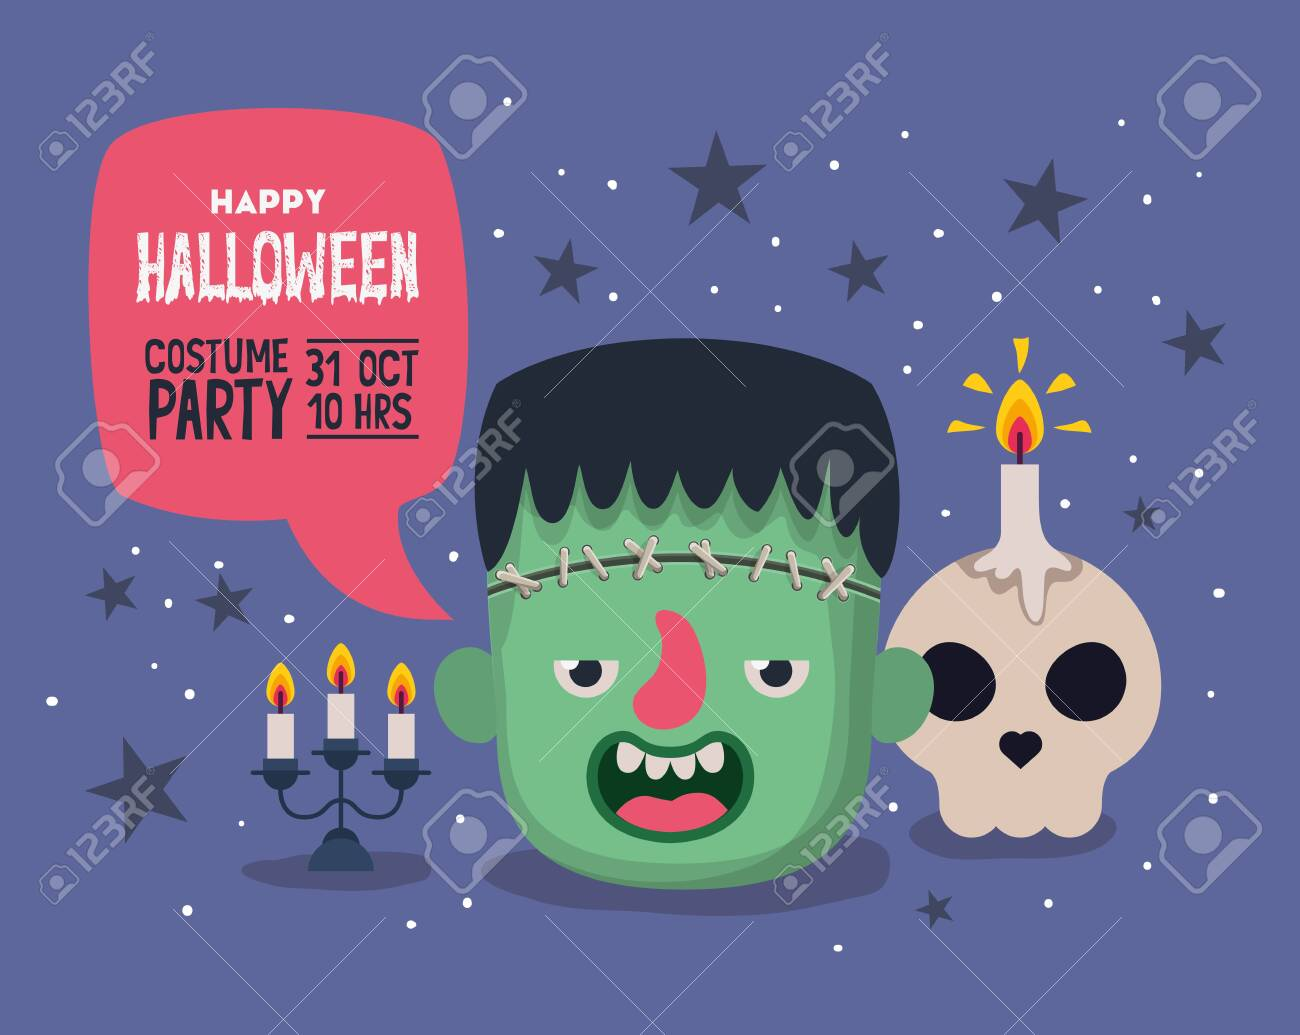 Halloween invitation card with cartoon frankestein head and skull candle over purple background, colorful design, vector illustration - 133122833